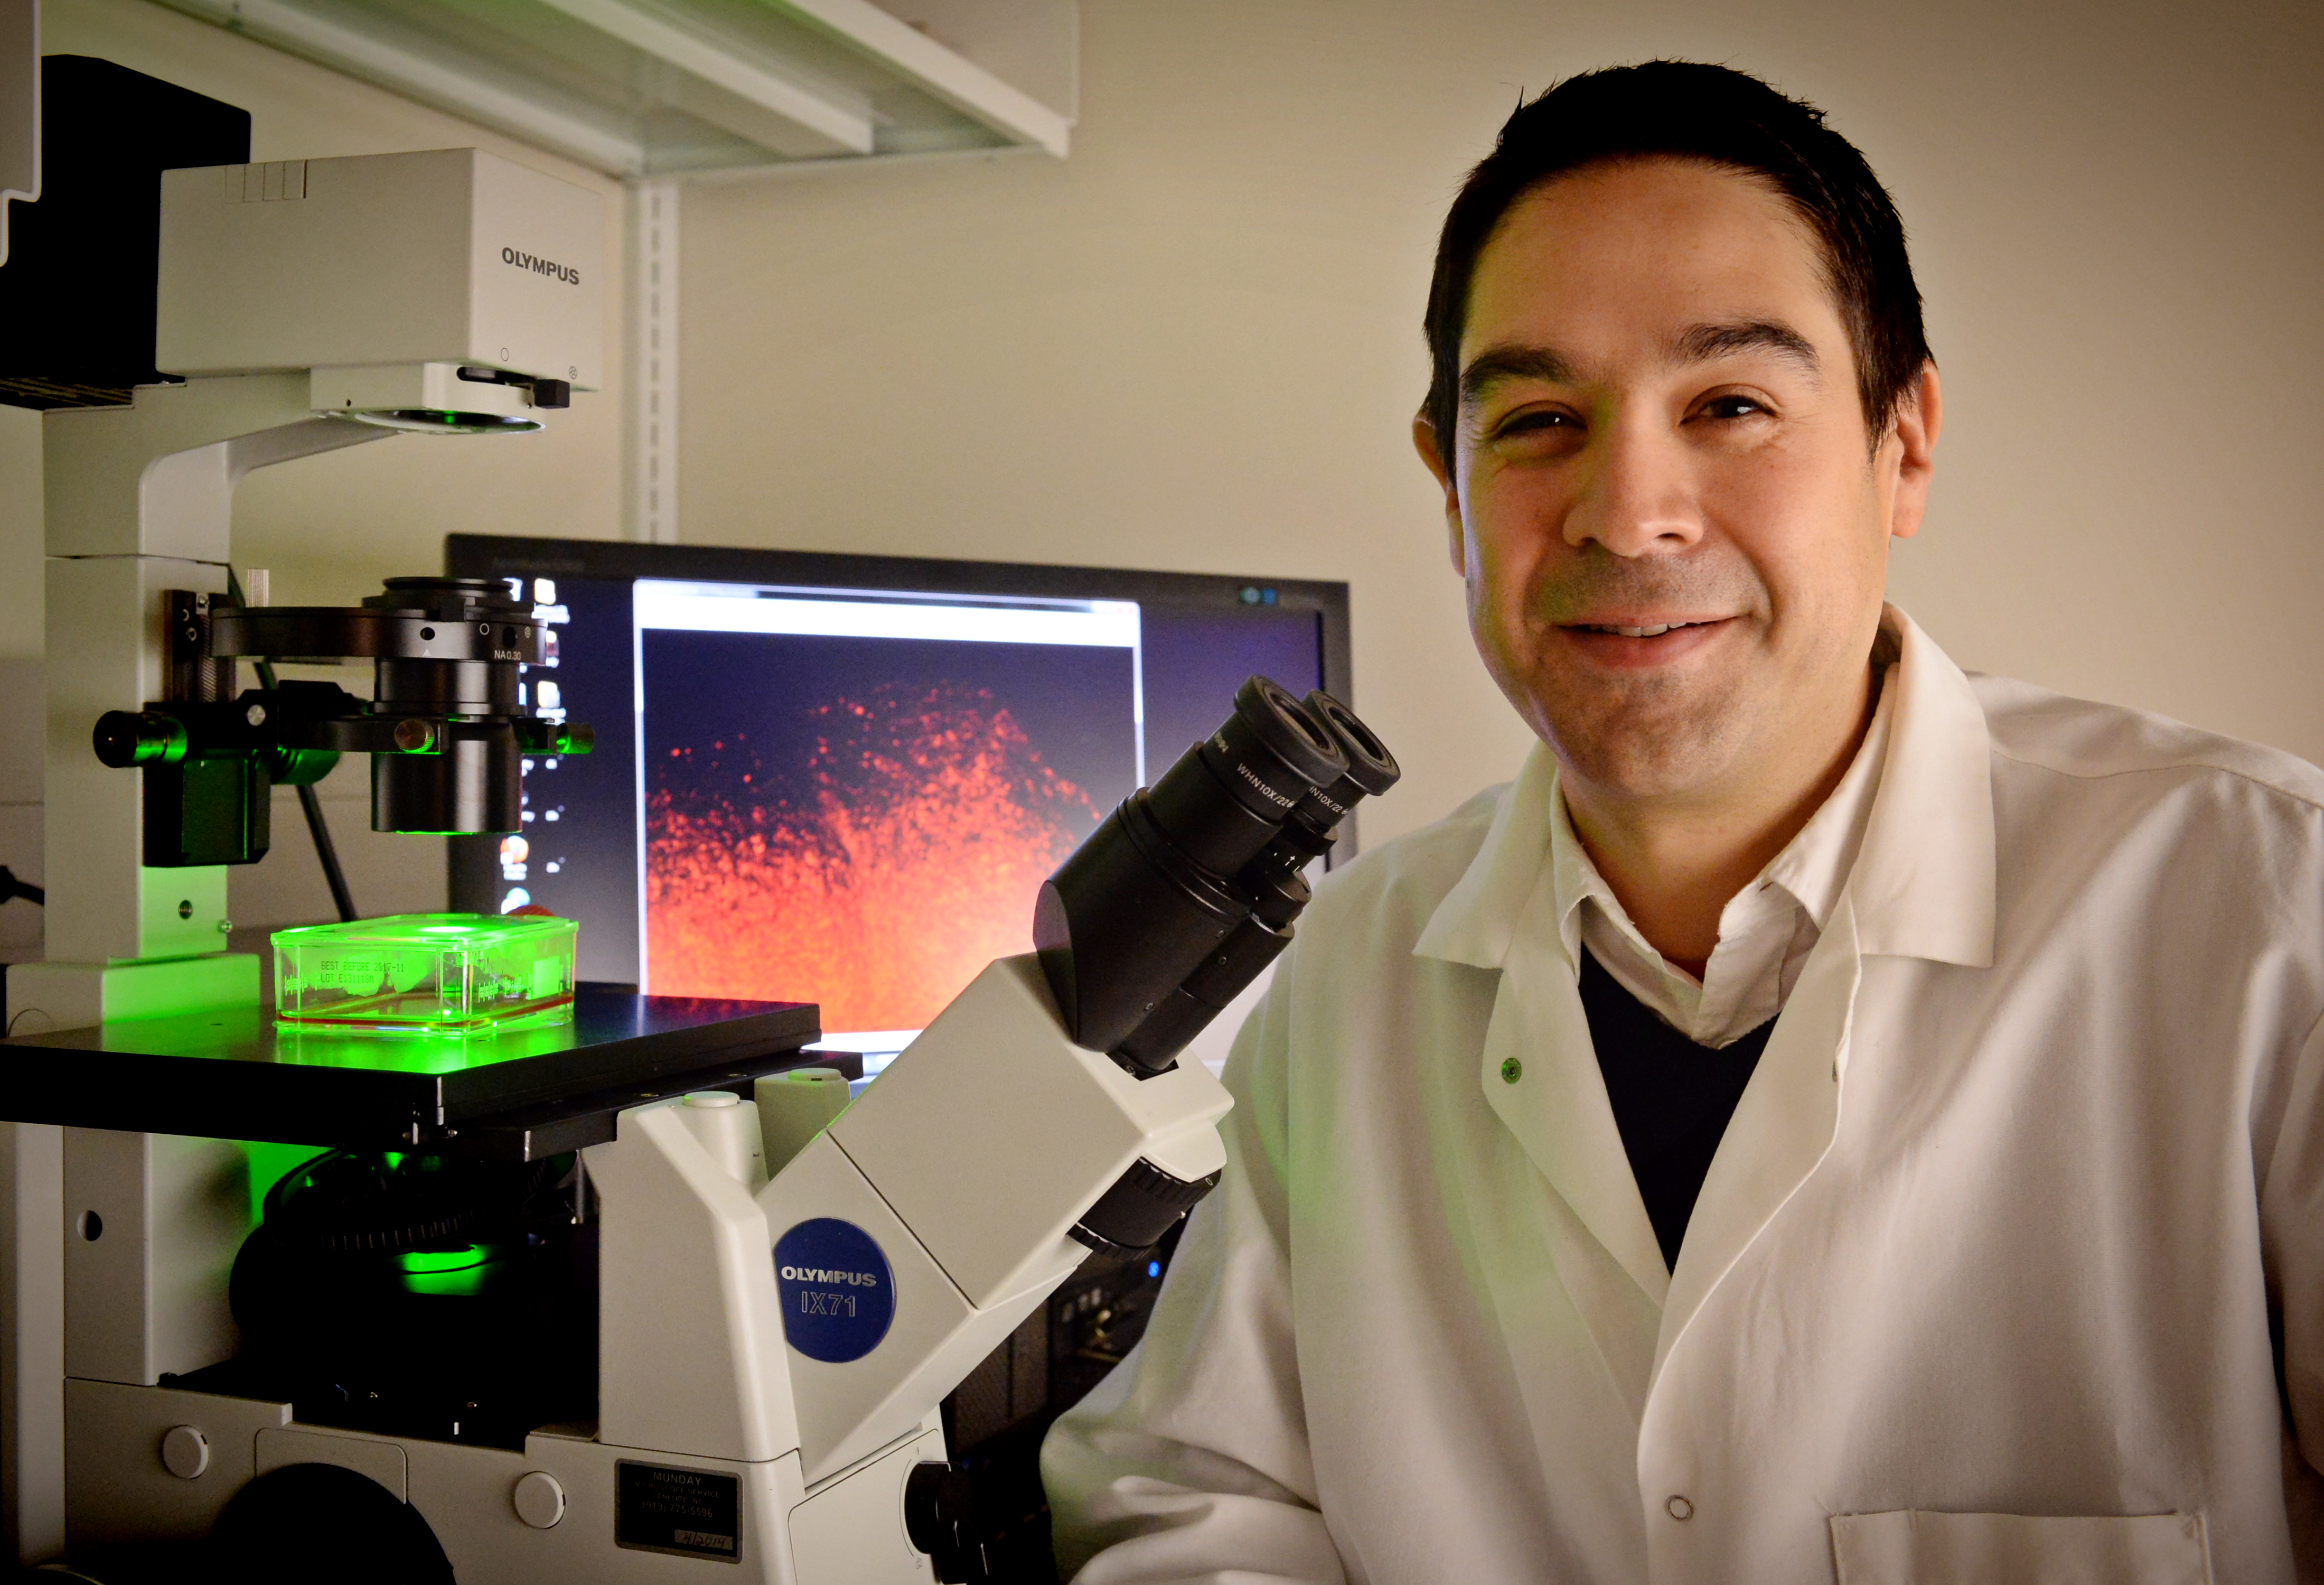 Shawn Hingtgen poses in his lab